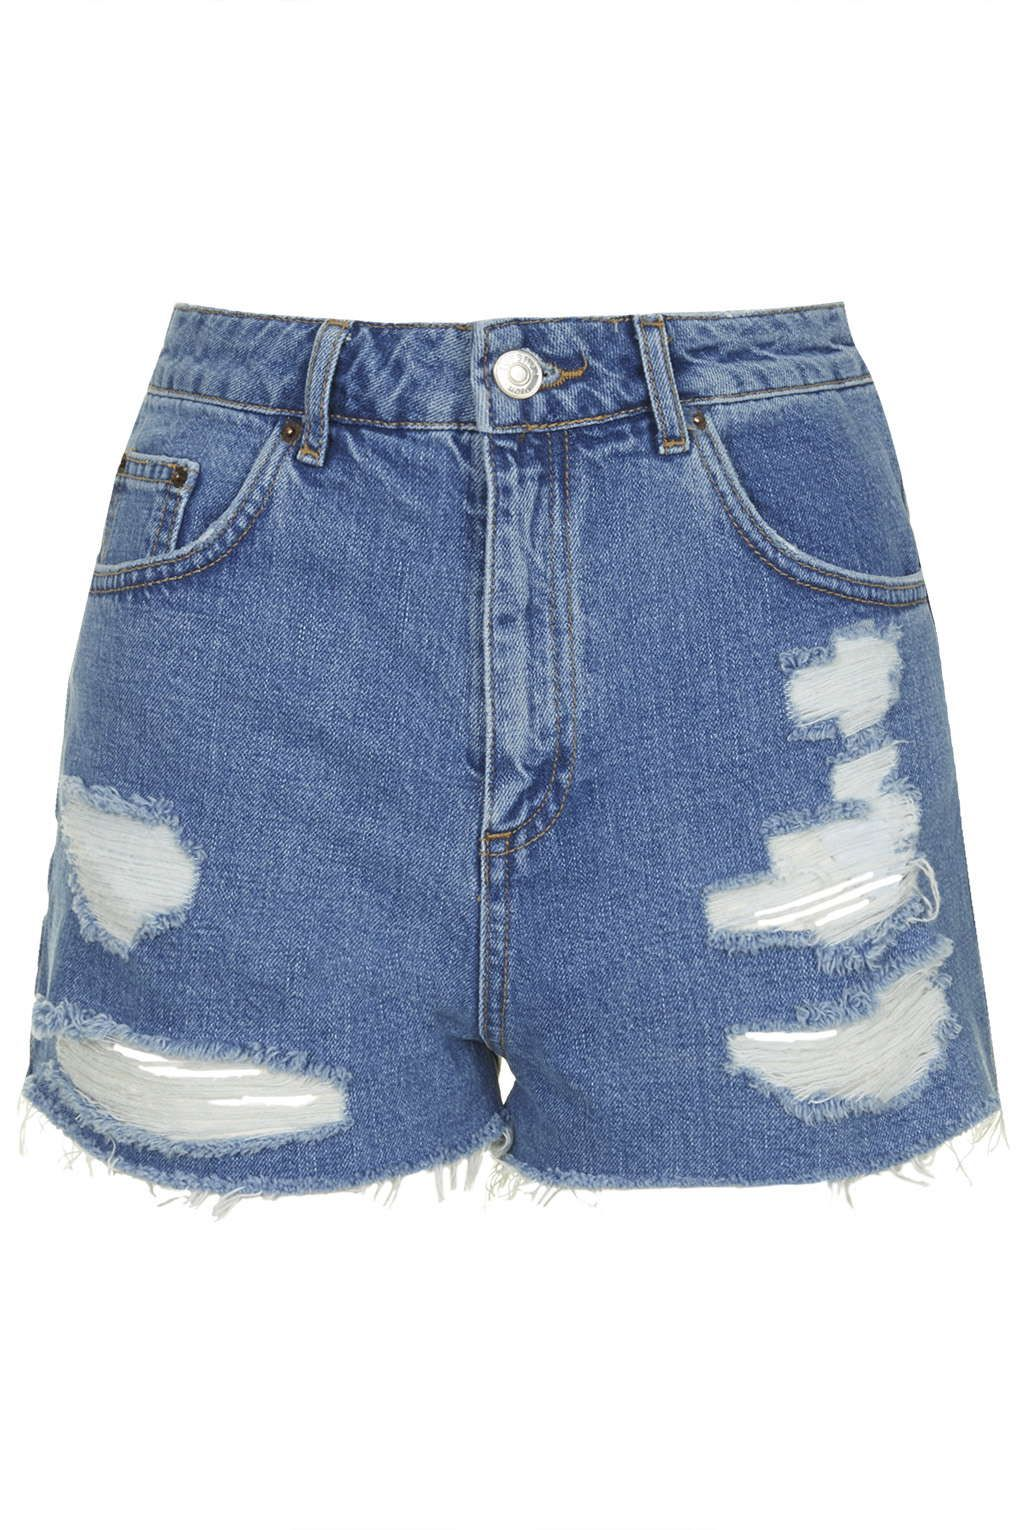 "<p>Topshop MOTO Vintage Ripped Mom Shorts, $58; <a href=""http://us.topshop.com/en/tsus/product/clothing-70483/denim-70972/moto-vintage-ripped-mom-shorts-4487694?bi=0&ps=200"">tosphop.com</a></p>"